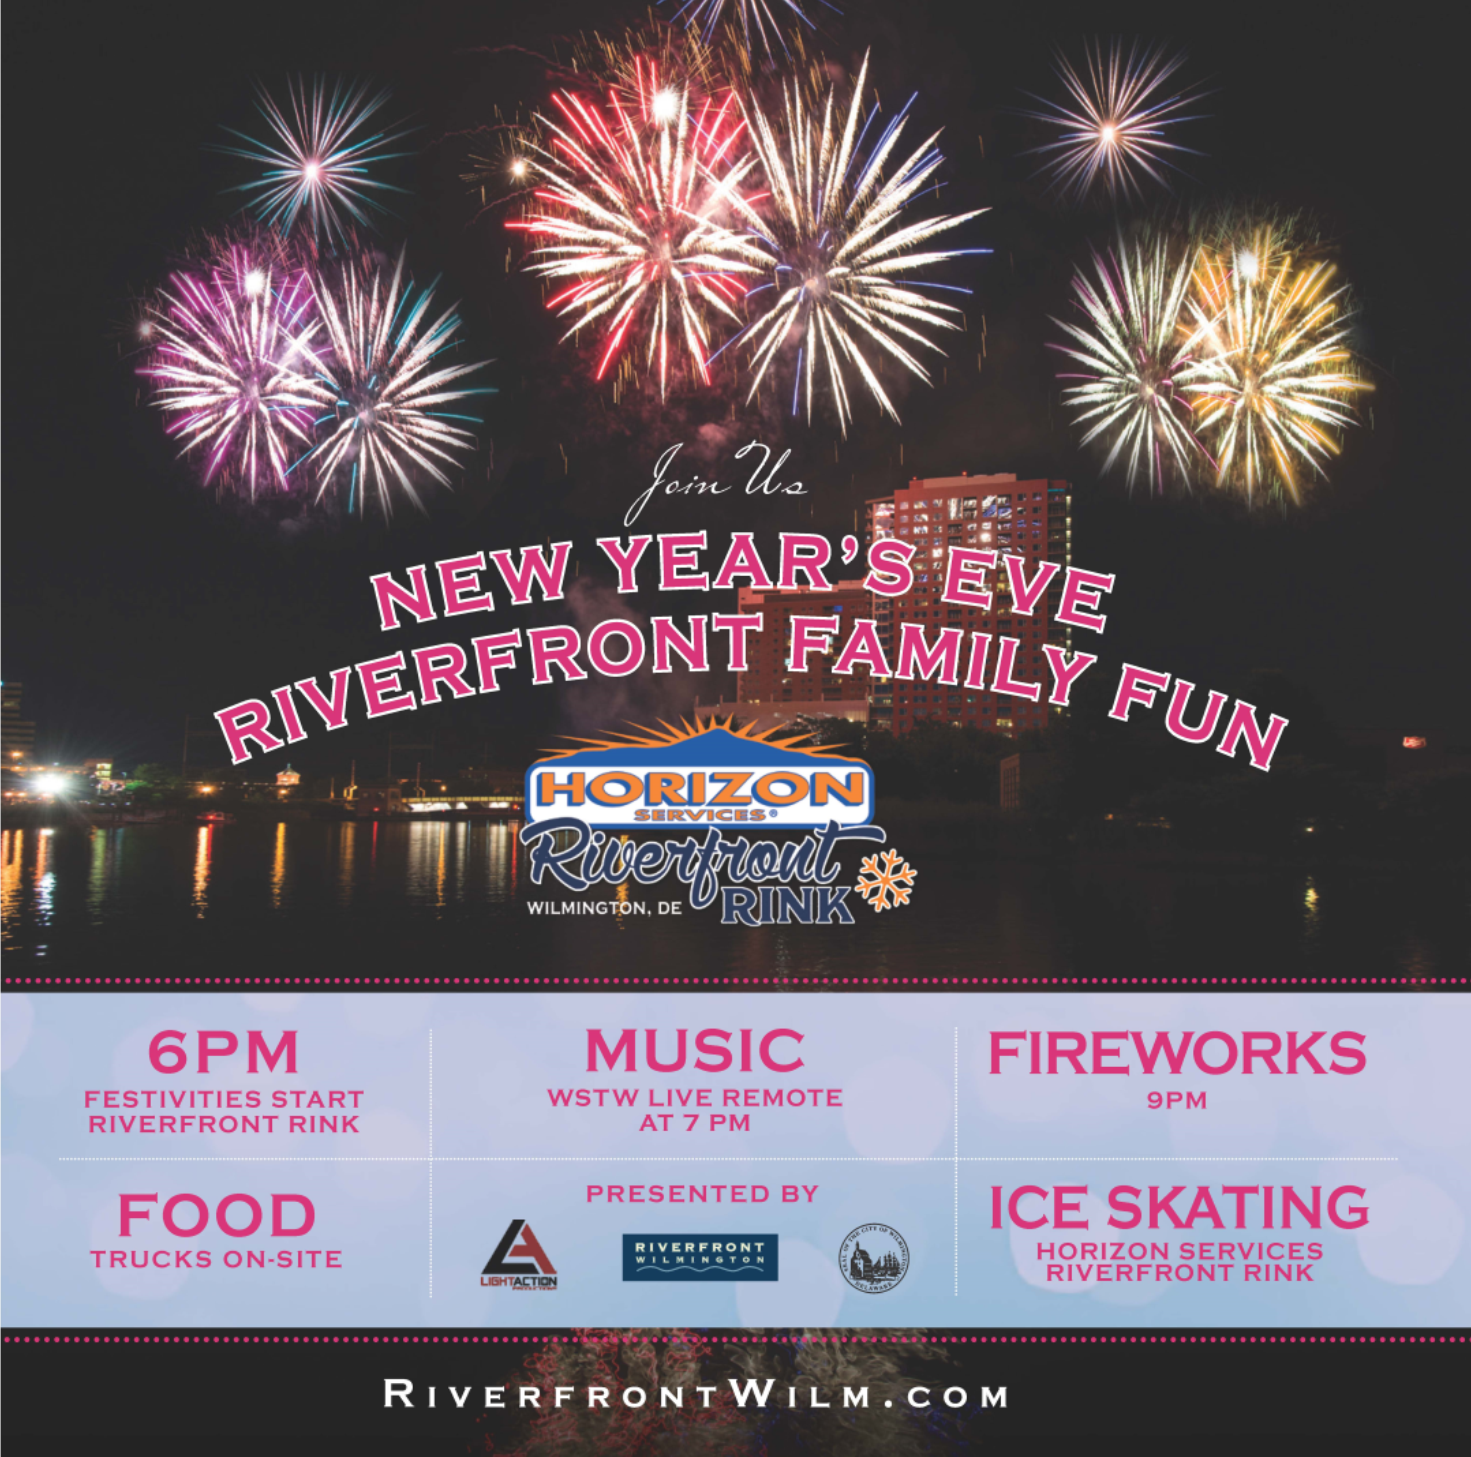 2nd Annual New Year's Eve Riverfront Family Fun at the Riverfront in Wilmington